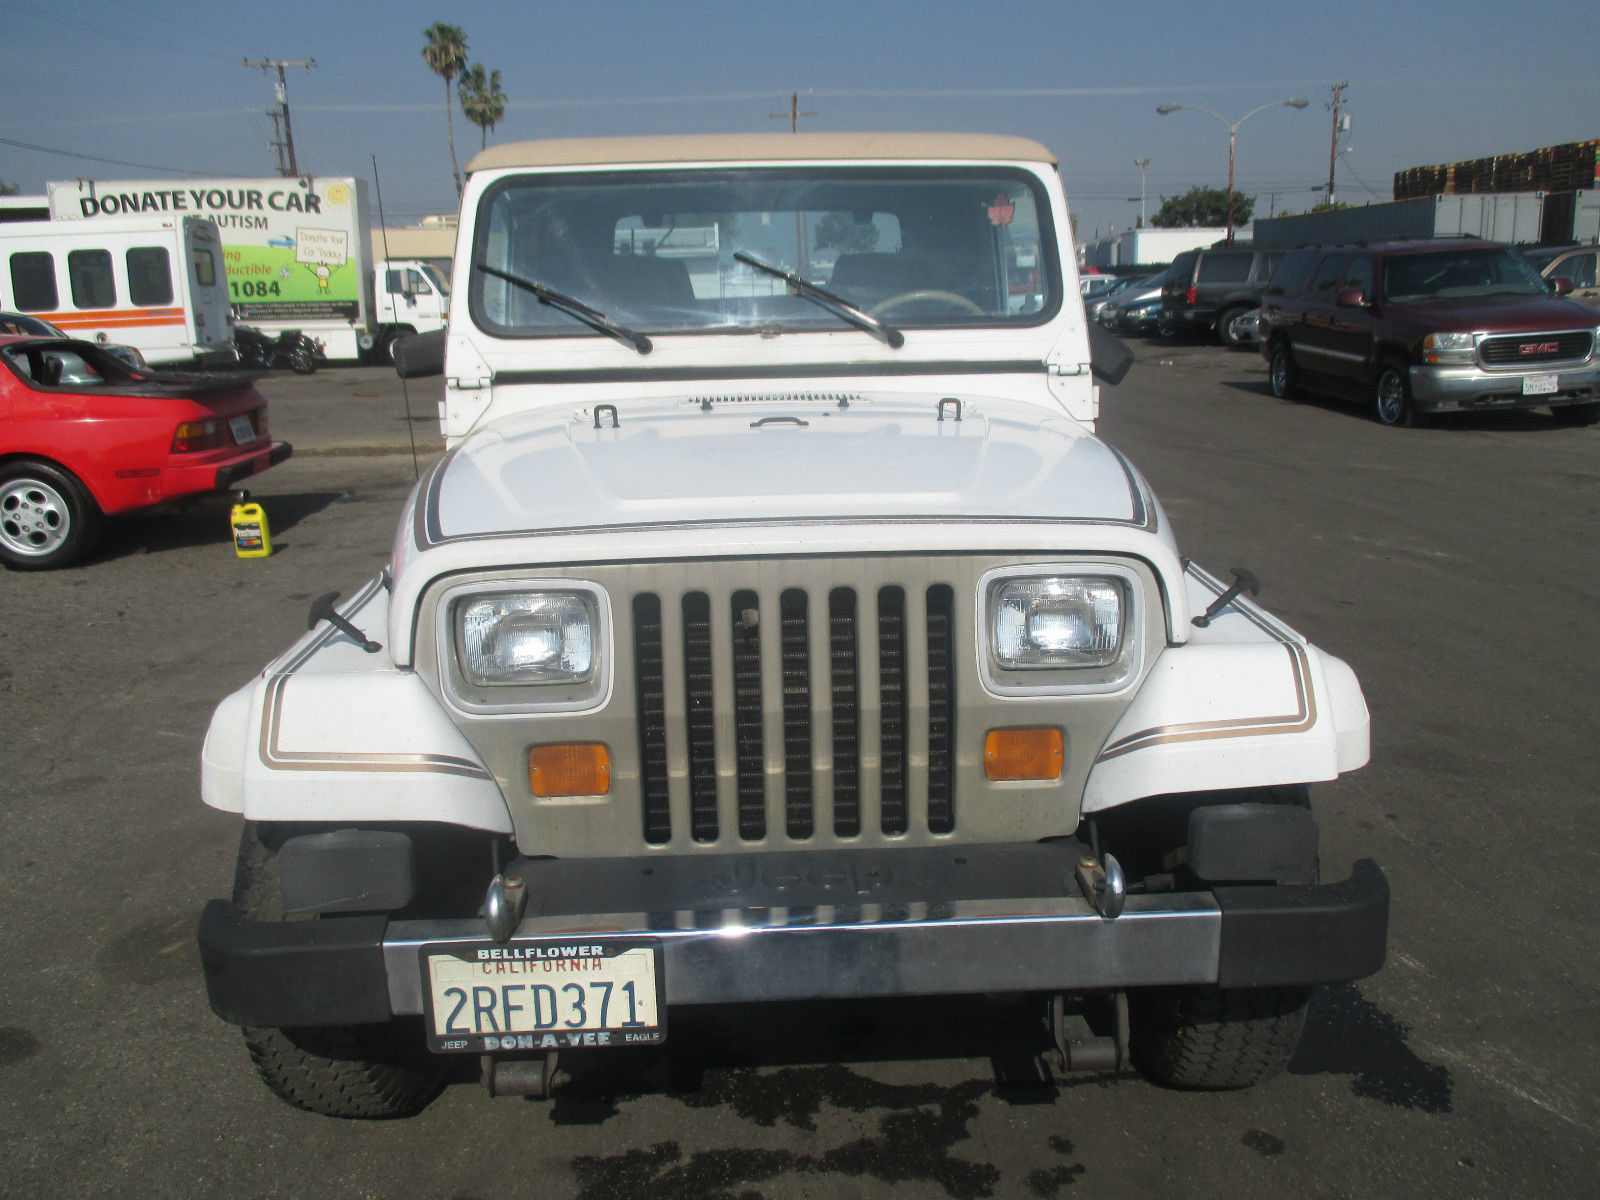 1990 jeep wrangler laredo sport utility 2 door 4 2l no reserve for sale in anaheim california. Black Bedroom Furniture Sets. Home Design Ideas